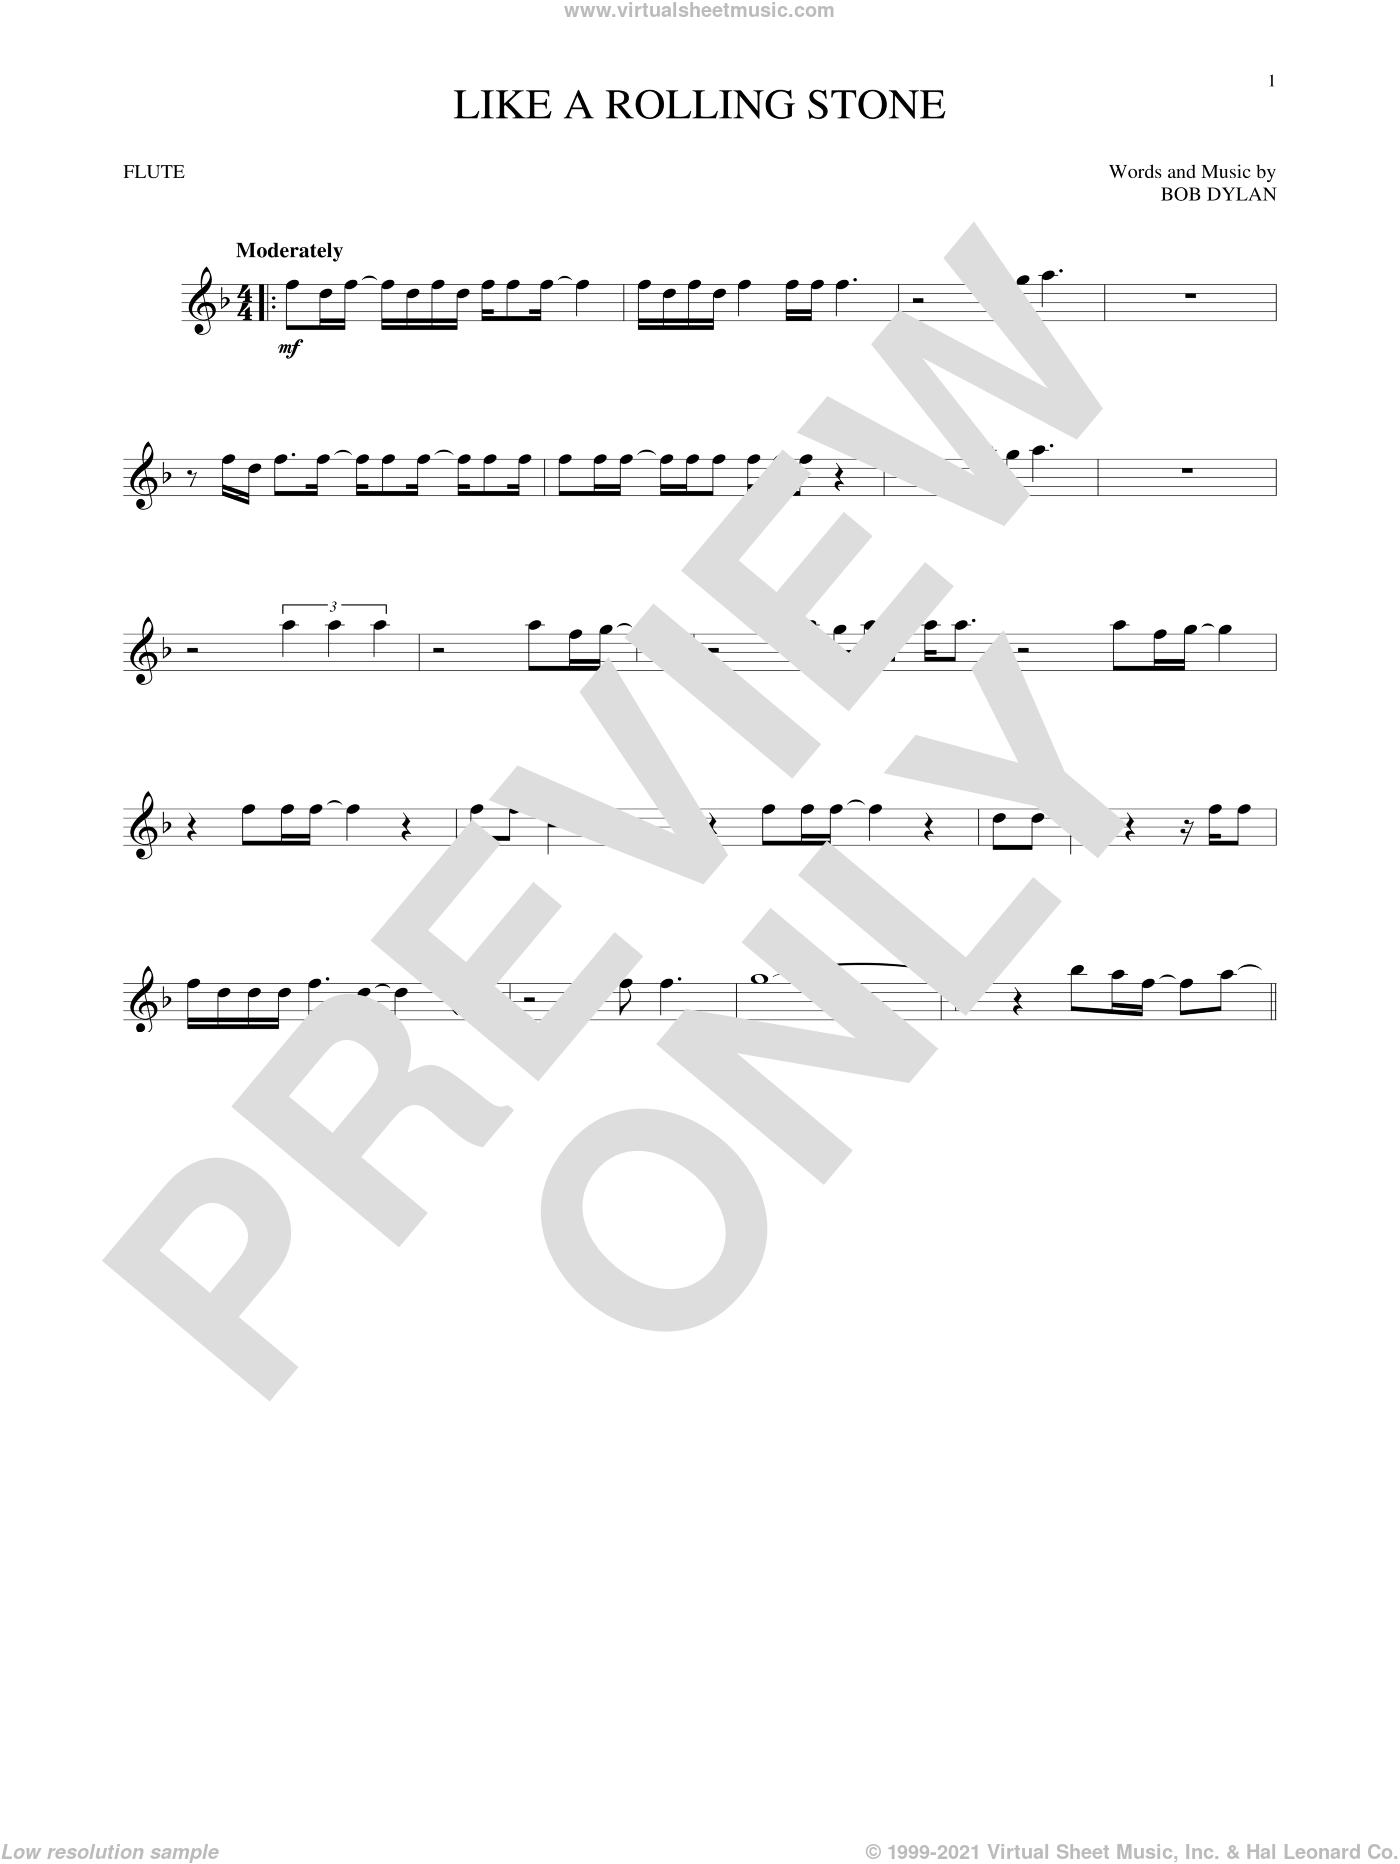 Like A Rolling Stone sheet music for flute solo by Bob Dylan, intermediate skill level